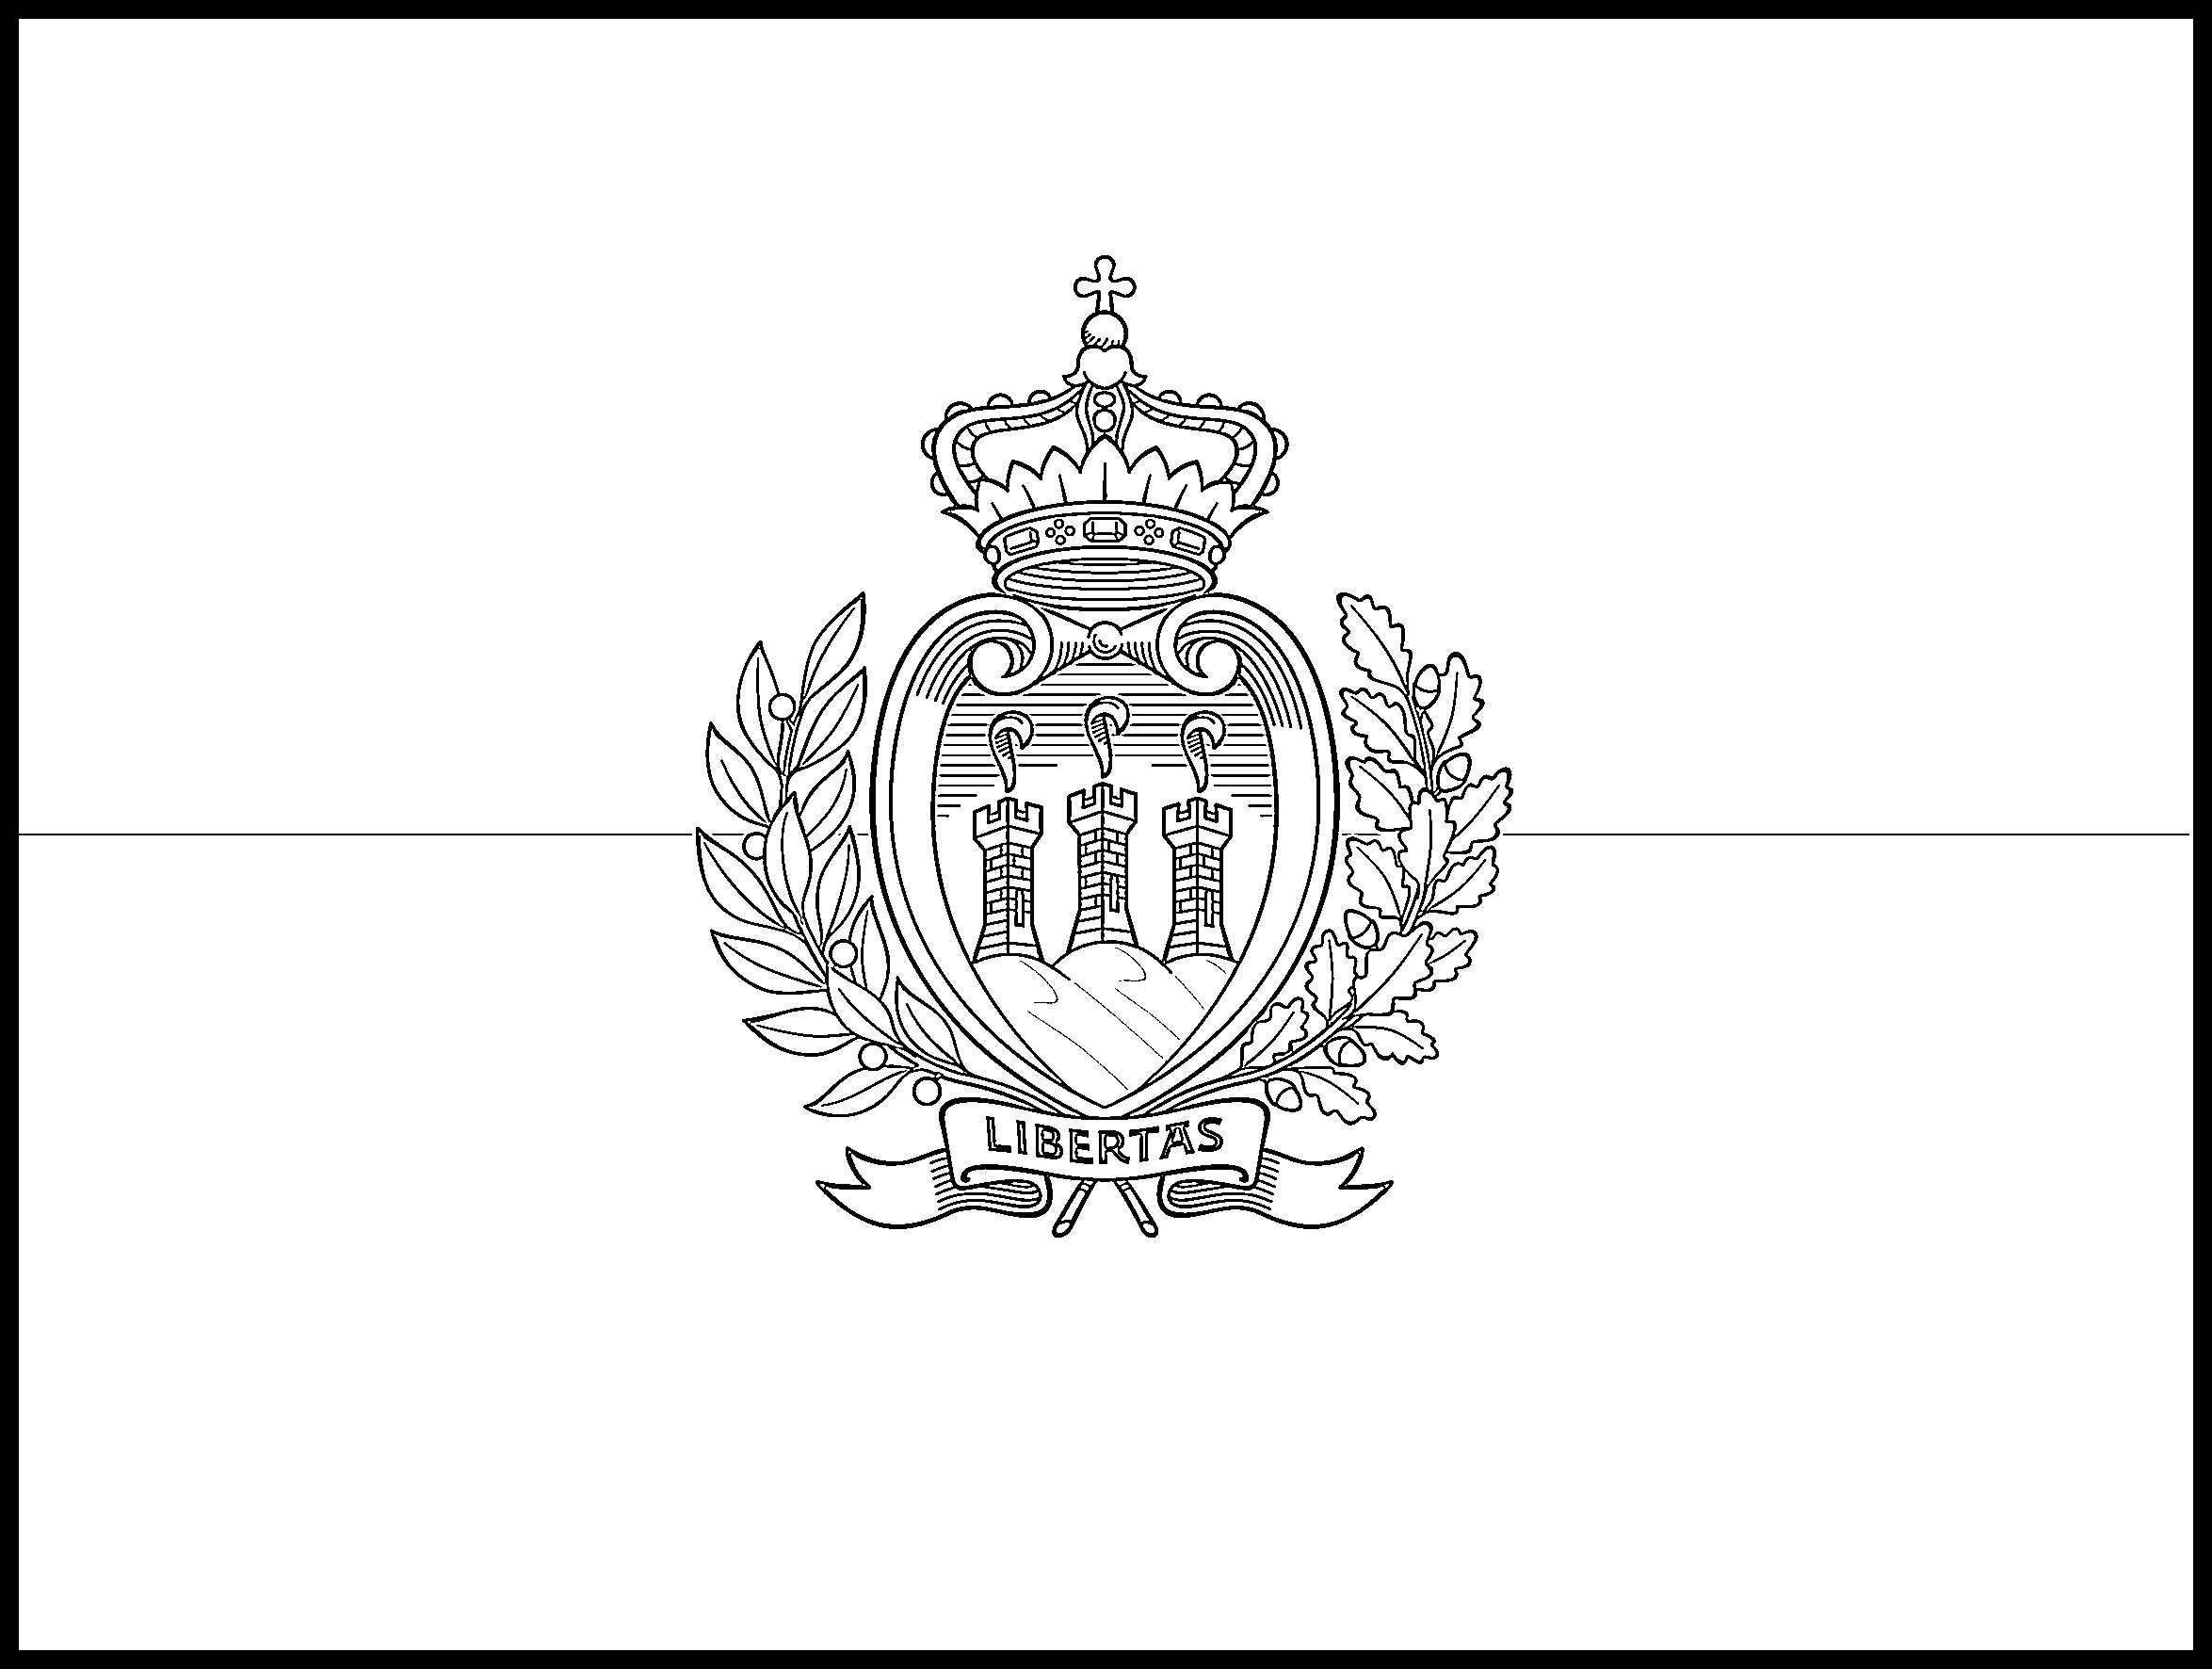 San_Marino Flag Colouring Page